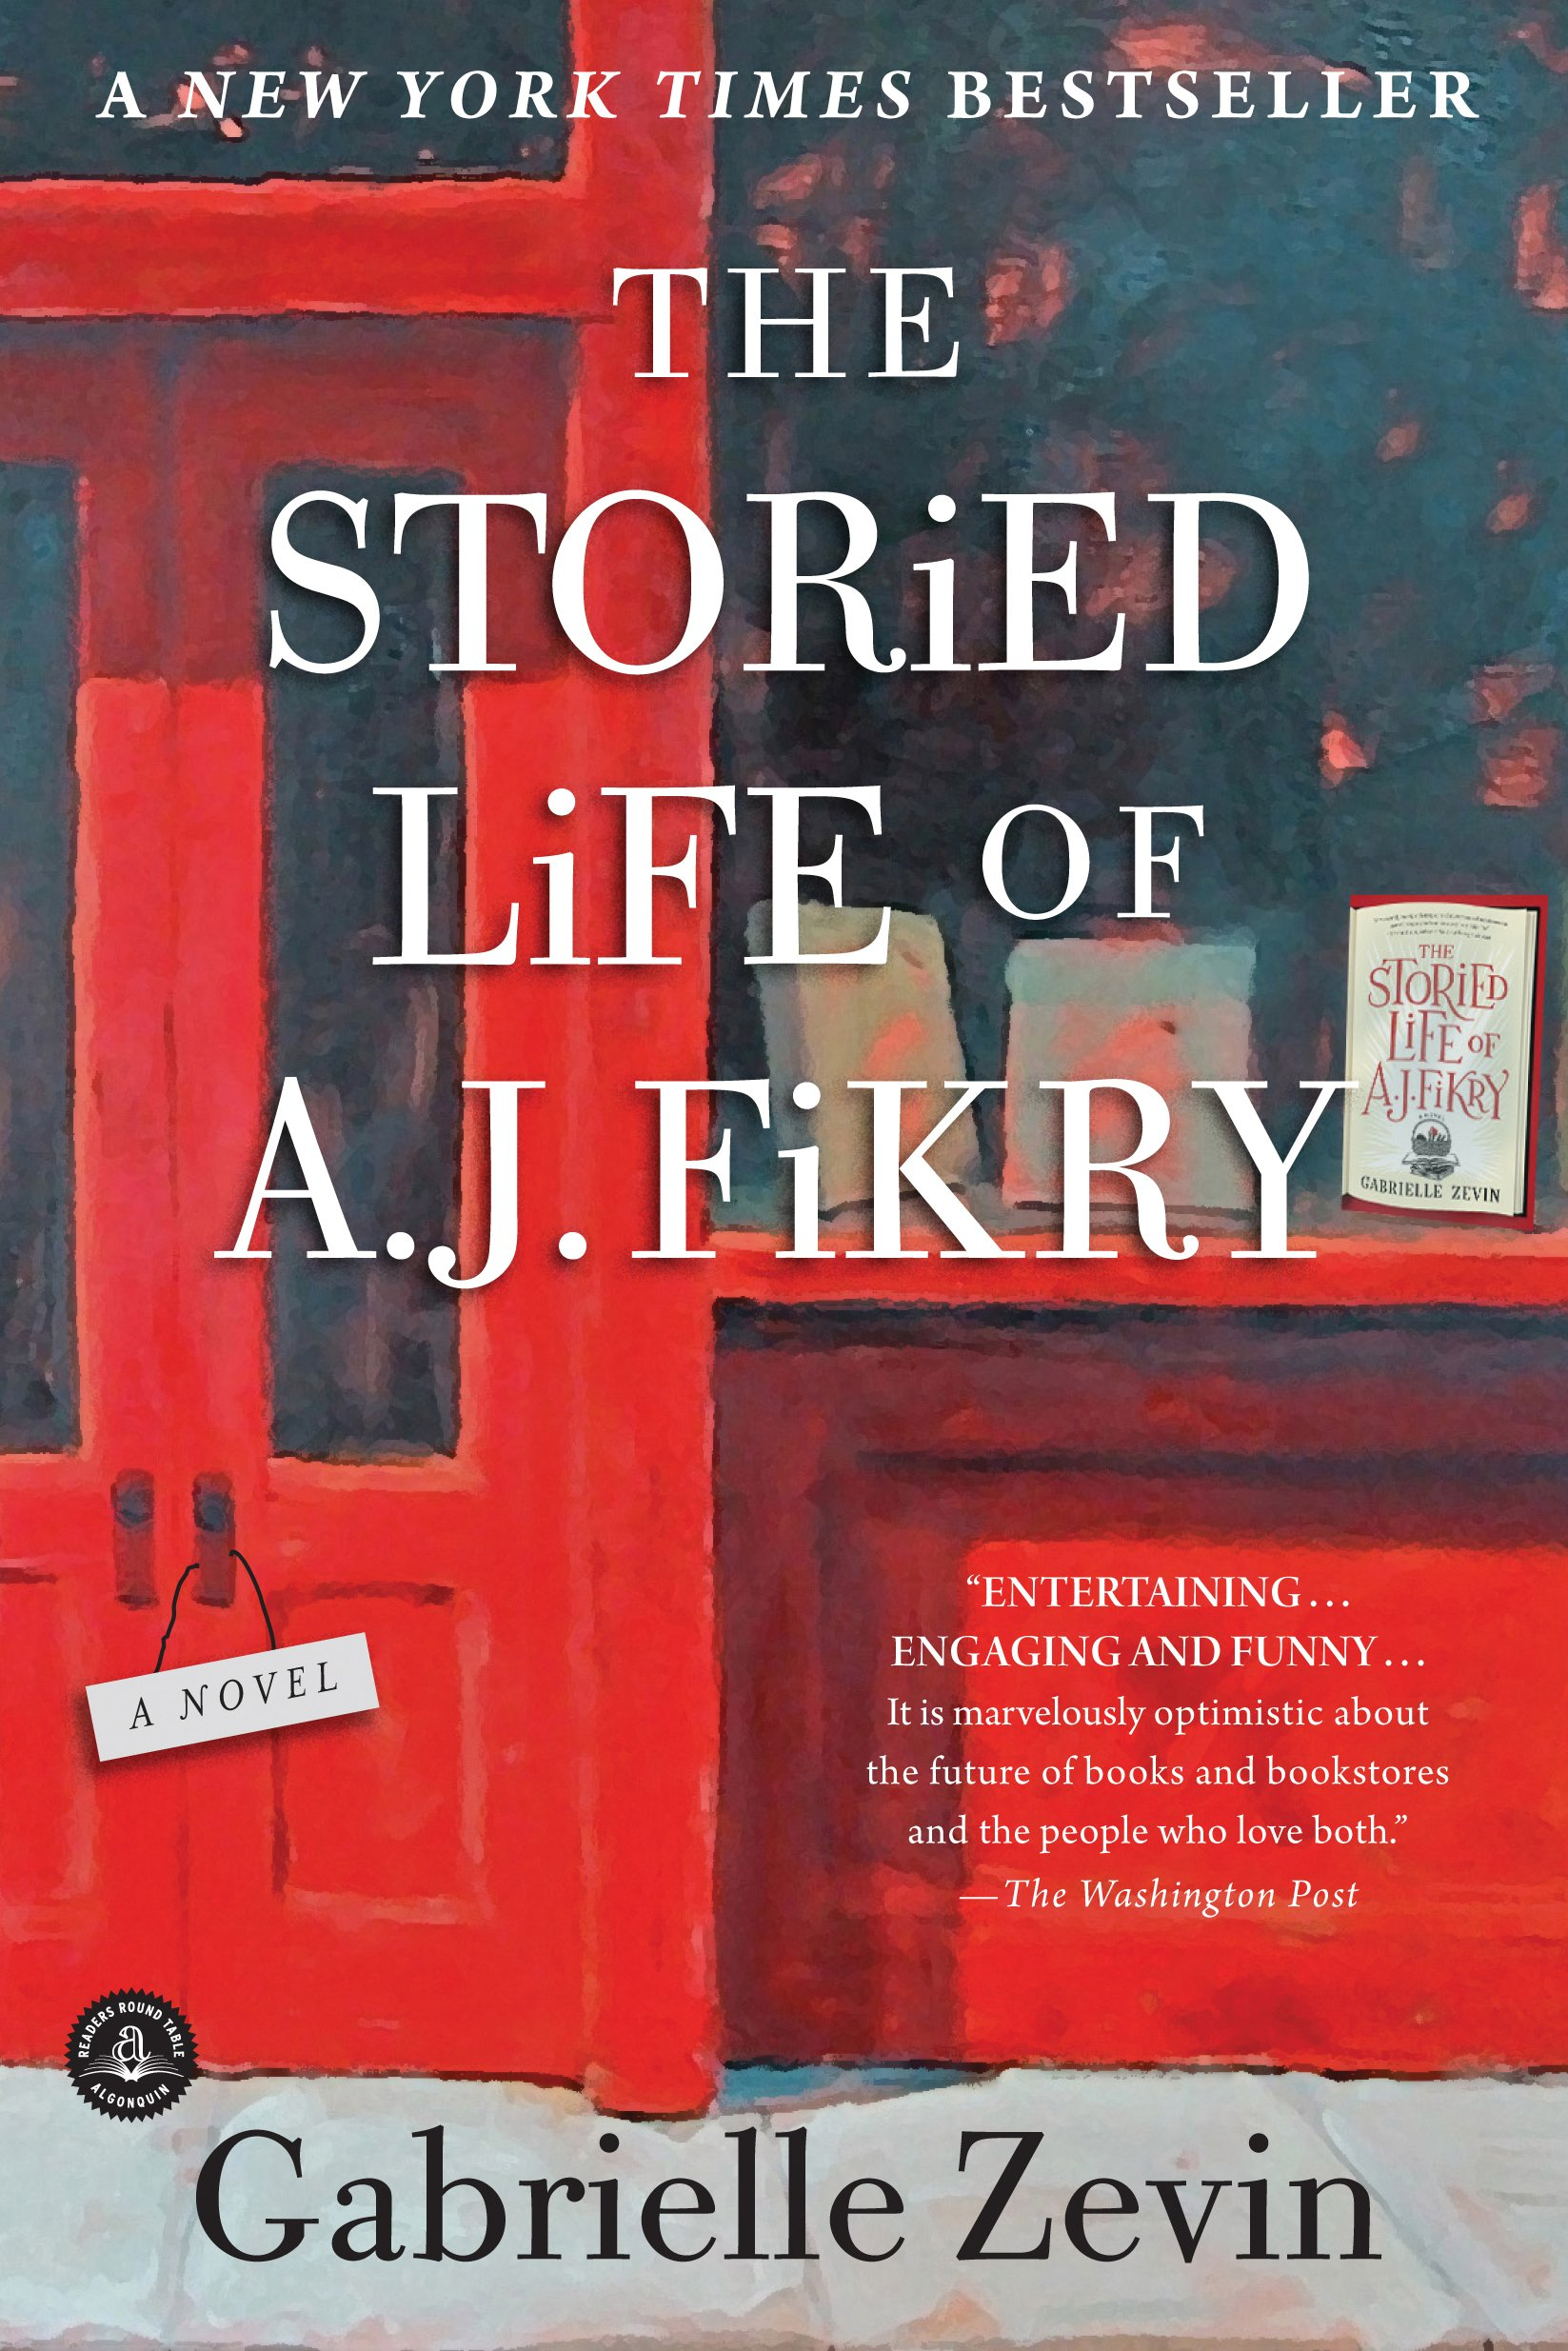 Image result for the storied life of a. j. fikry